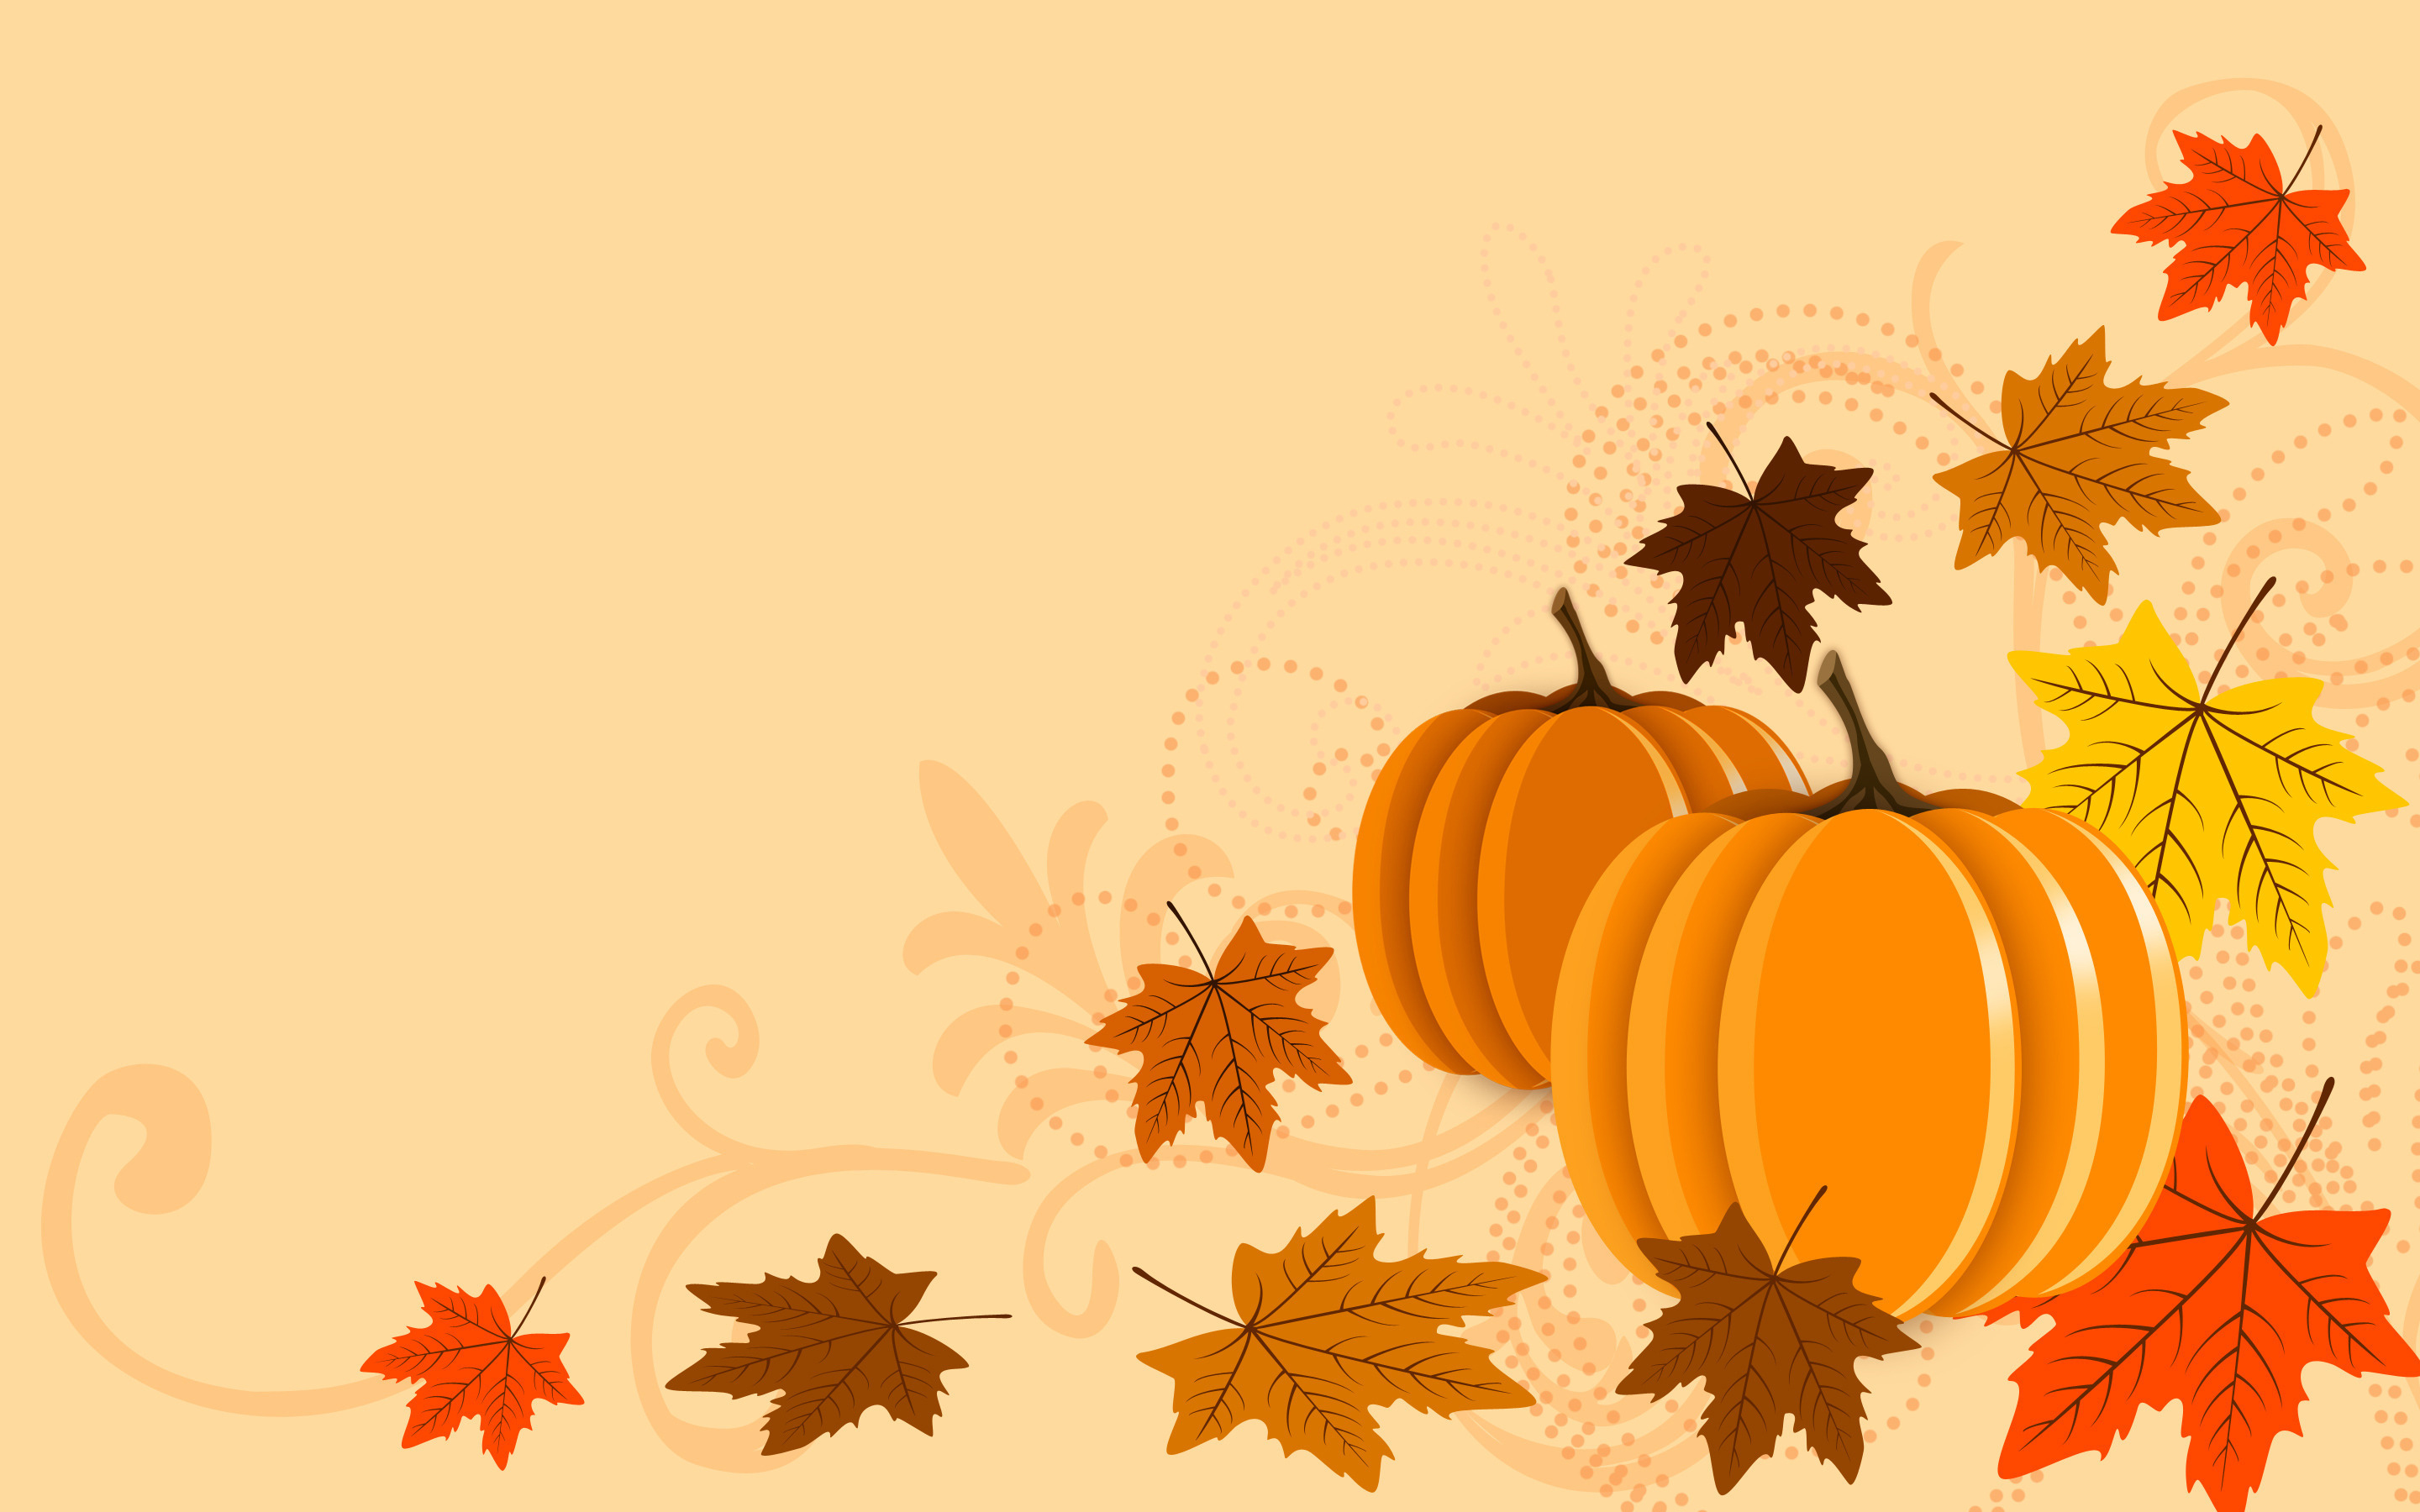 HD Pumpkin Wallpapers 2880x1800